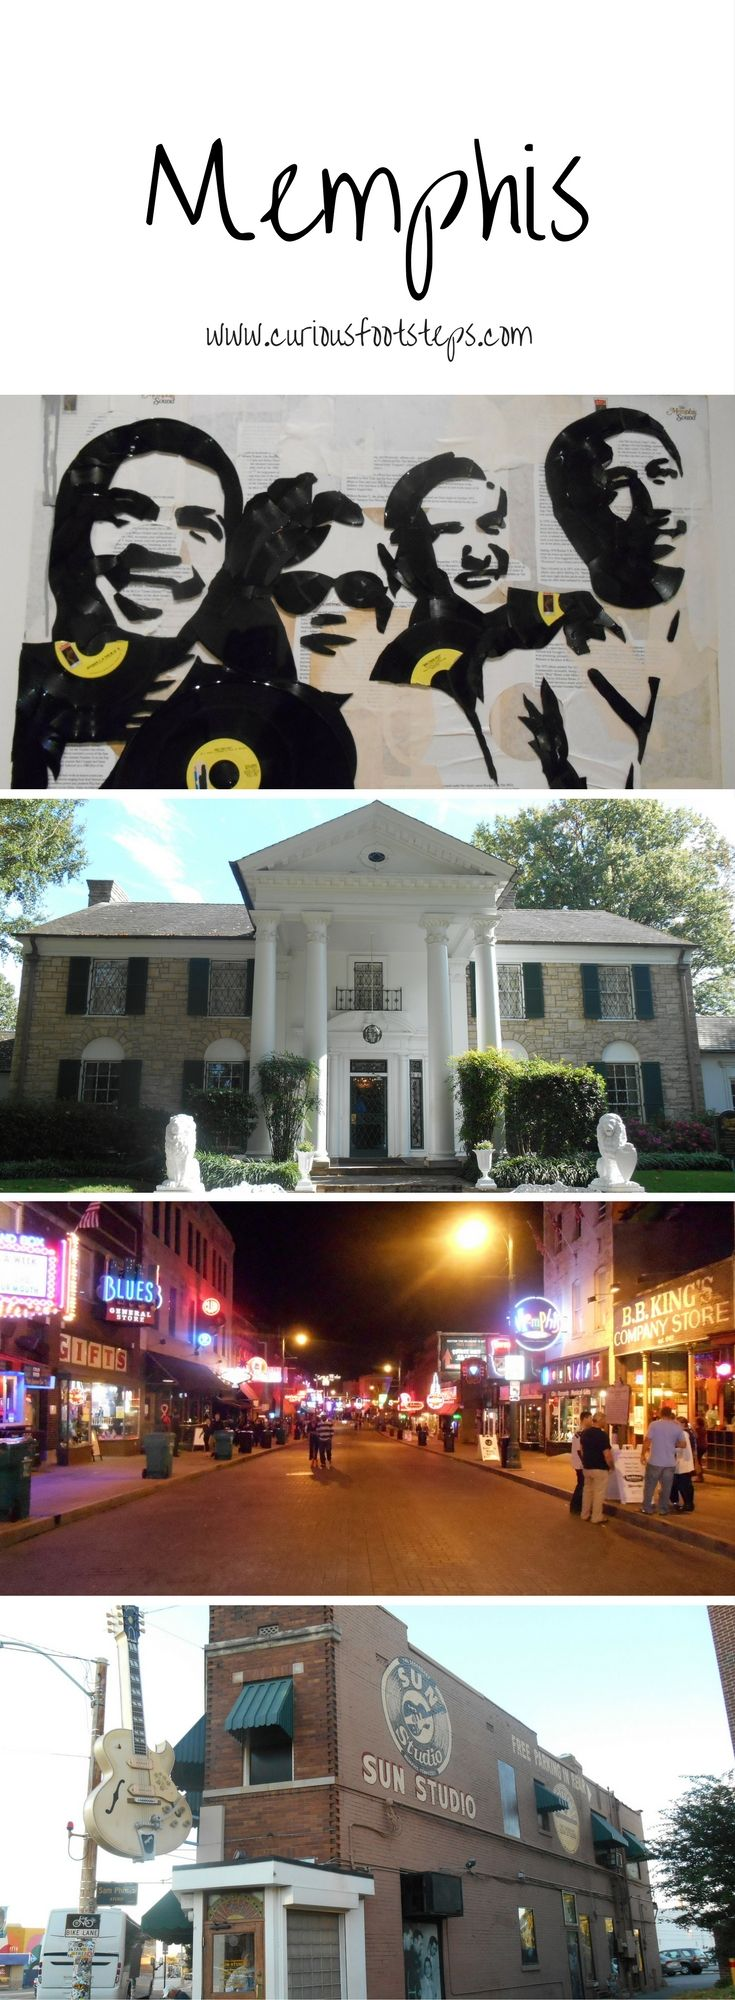 Memphis, Tennessee, USA, Sun Studio, Elvis Presley's Graceland, Stax Museum of American Soul Music, Civil Rights Museum, Beale Street, Martin Luther King Memorial